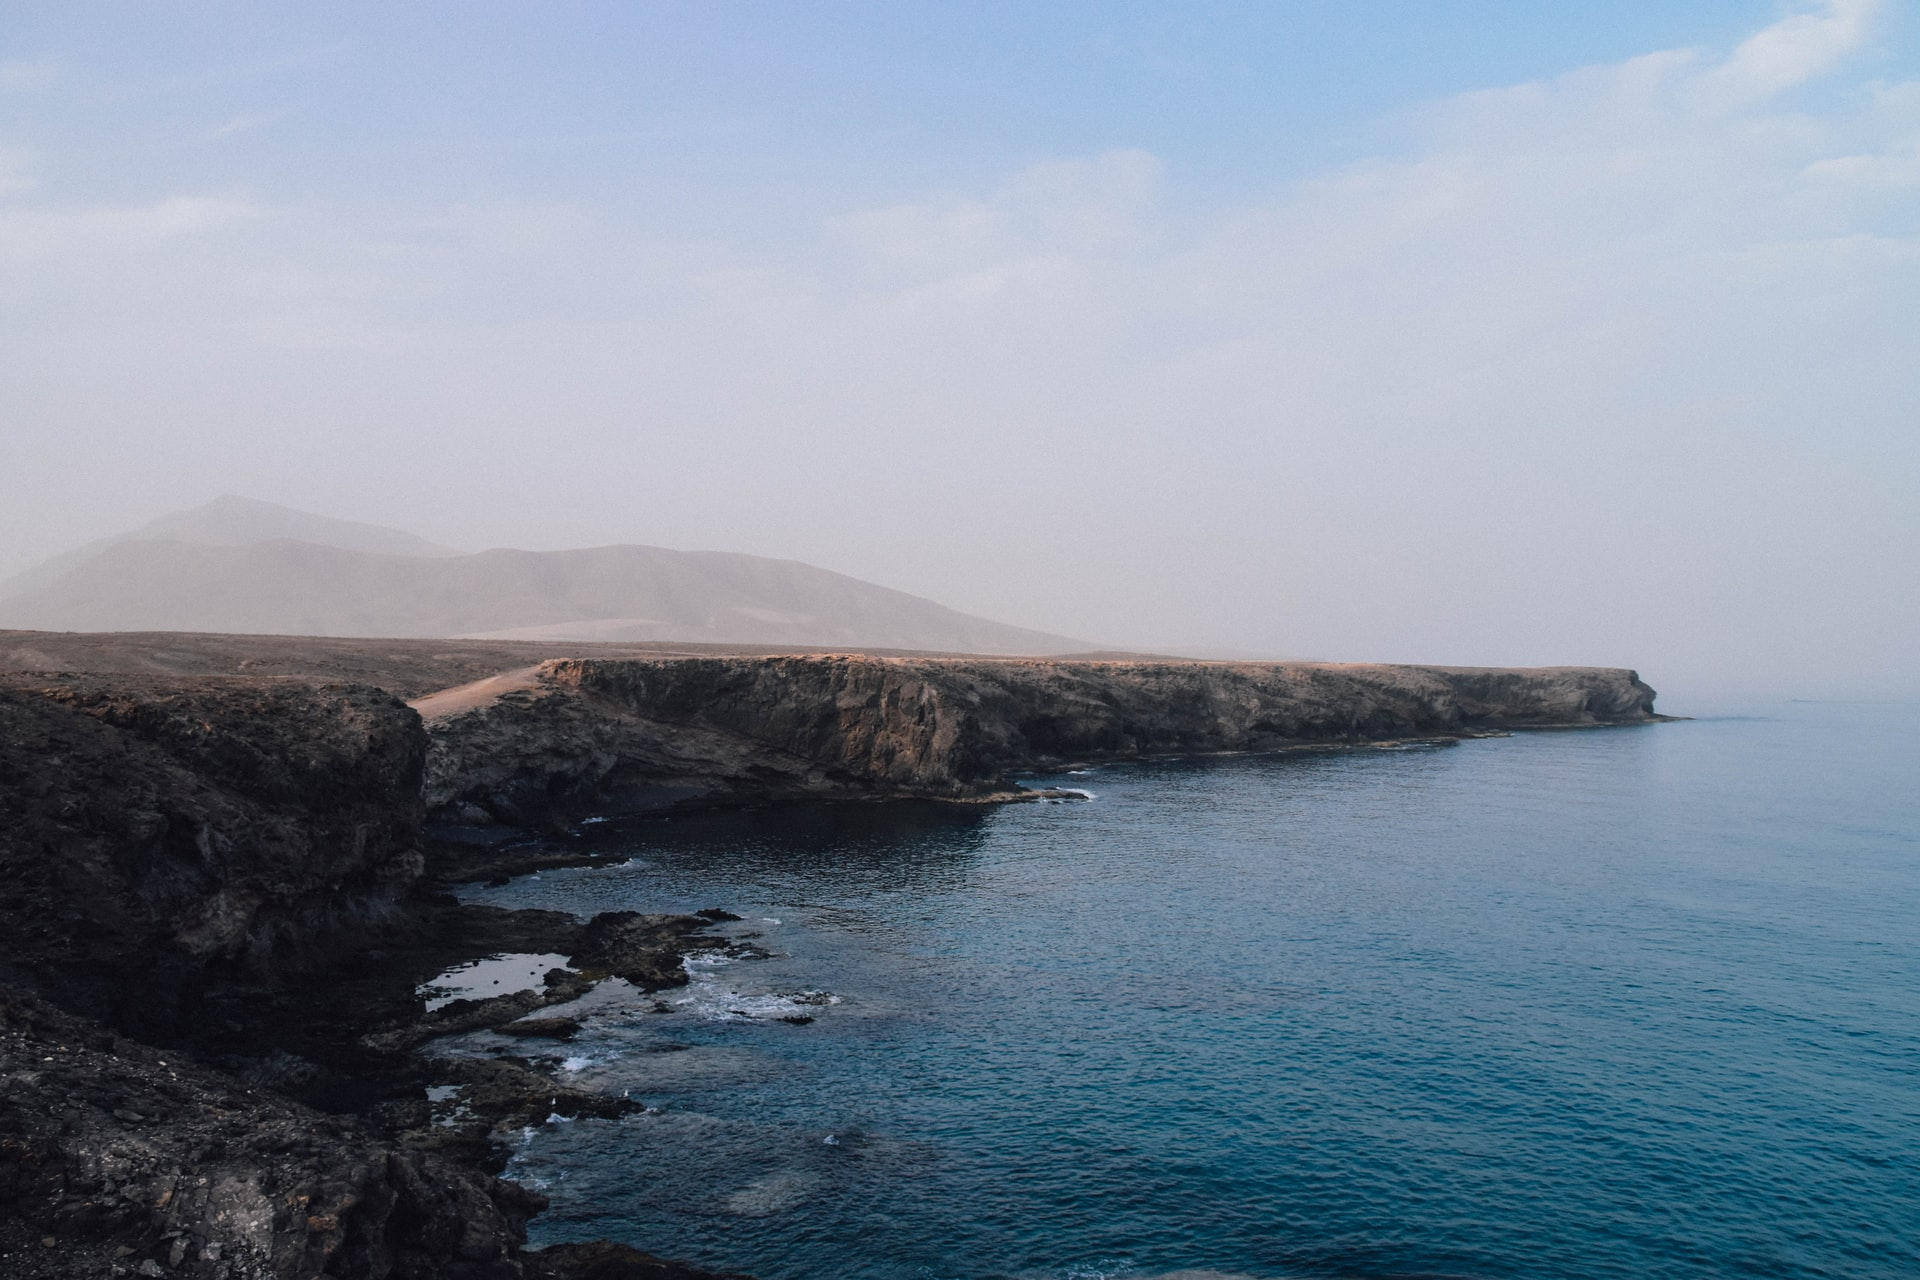 My Trip to Lanzarote in the Canary Islands, Spain - Travel in Covid-19 Times